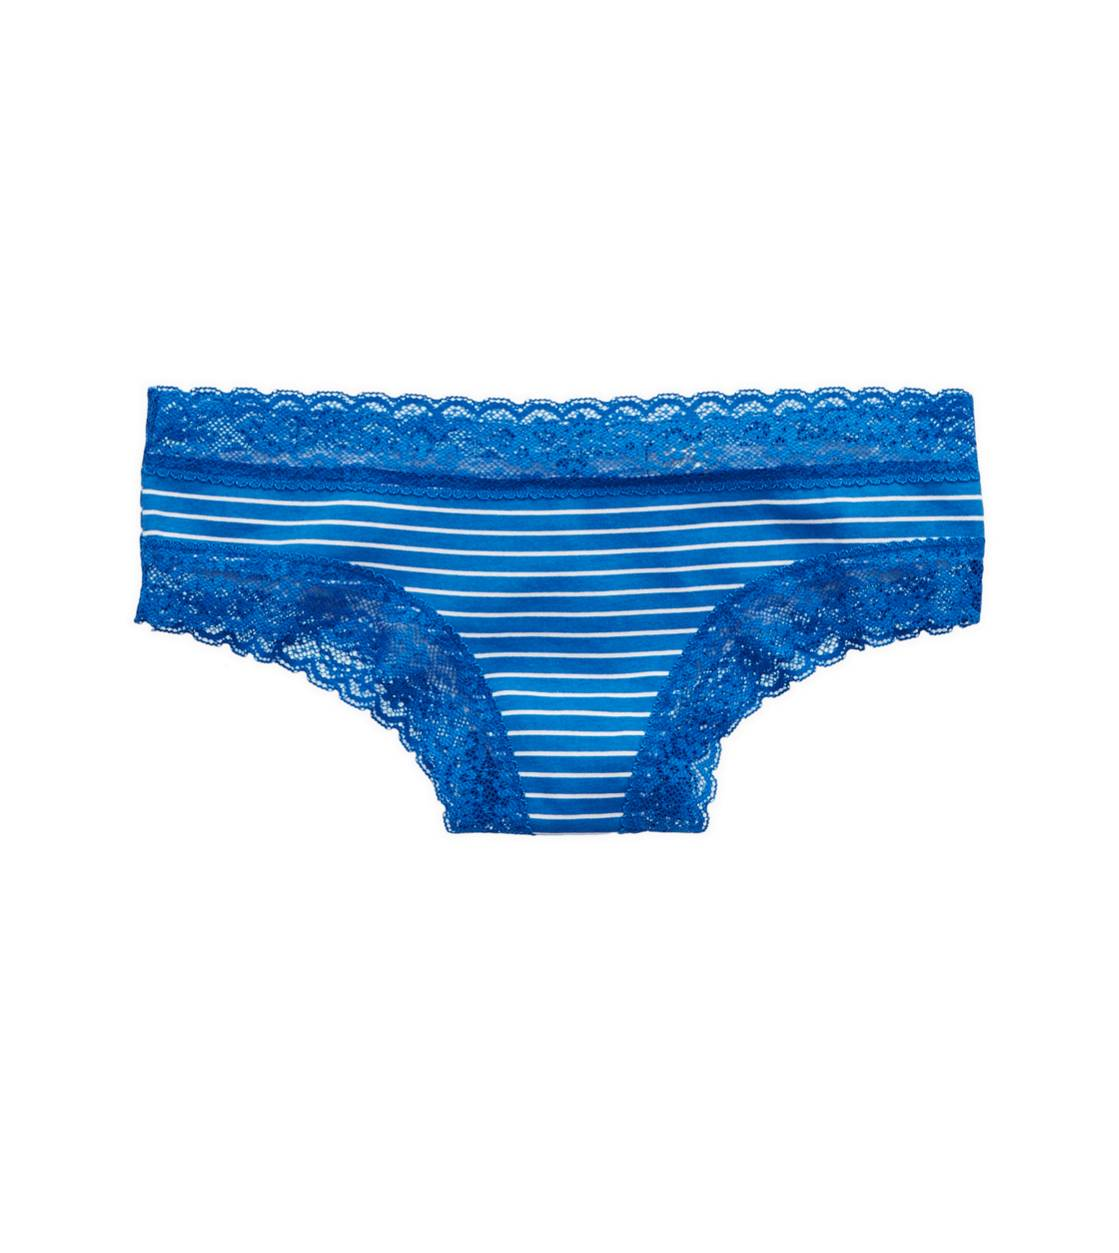 Blue Stead Aerie Lace Trim Cheeky